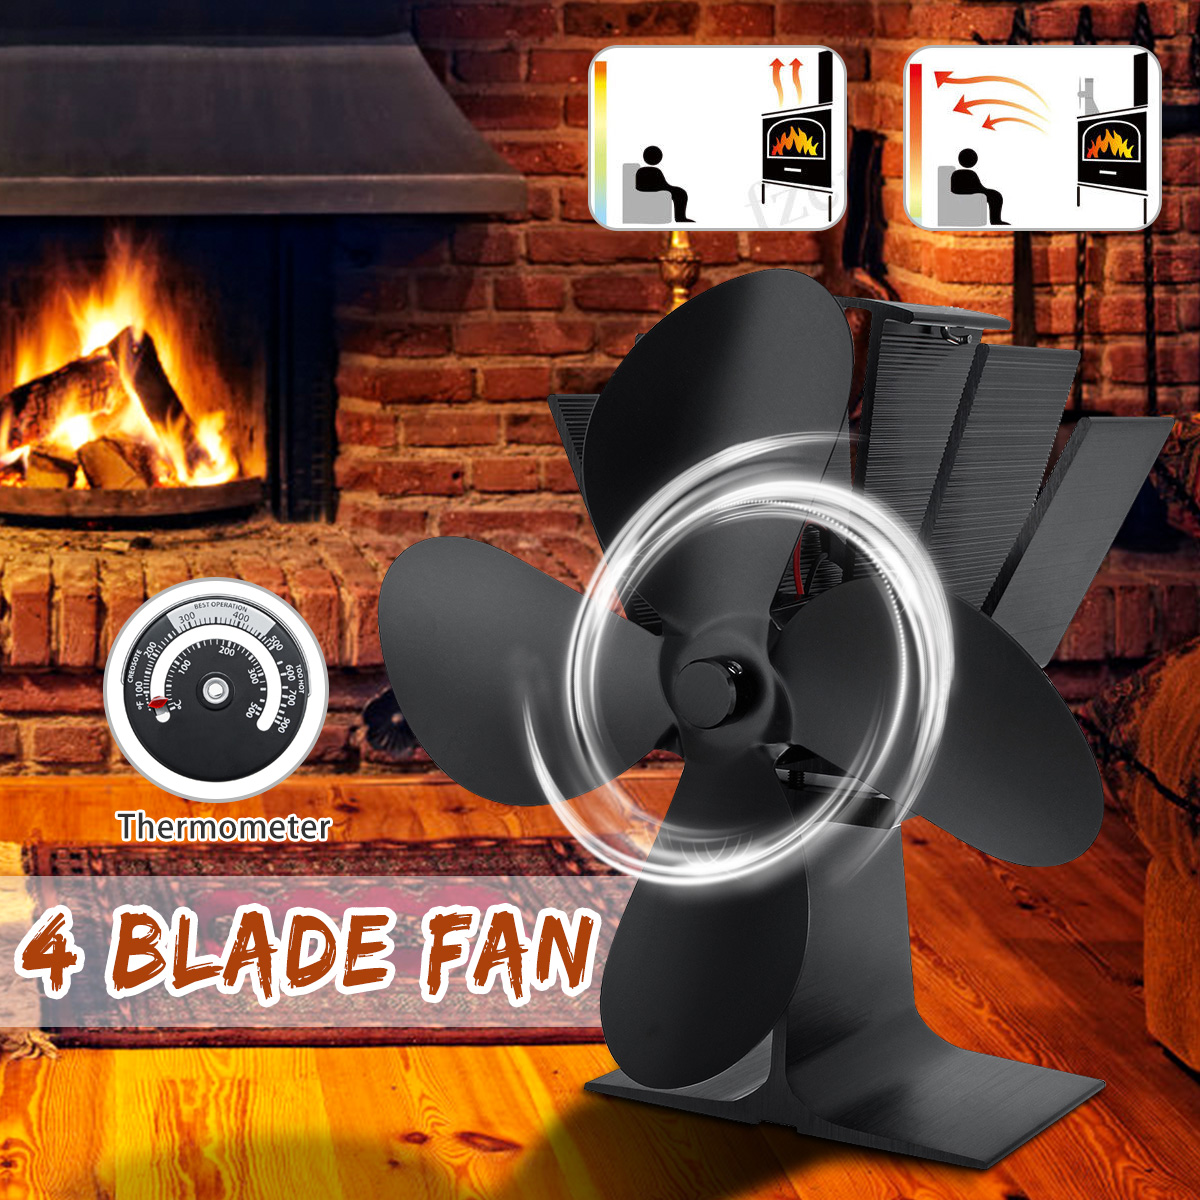 4 Blade 22.5cm Height Mini Heat Powered Stove Fan With Thermometer For Super Small Space On Wood/Log Burner/Fireplace Top